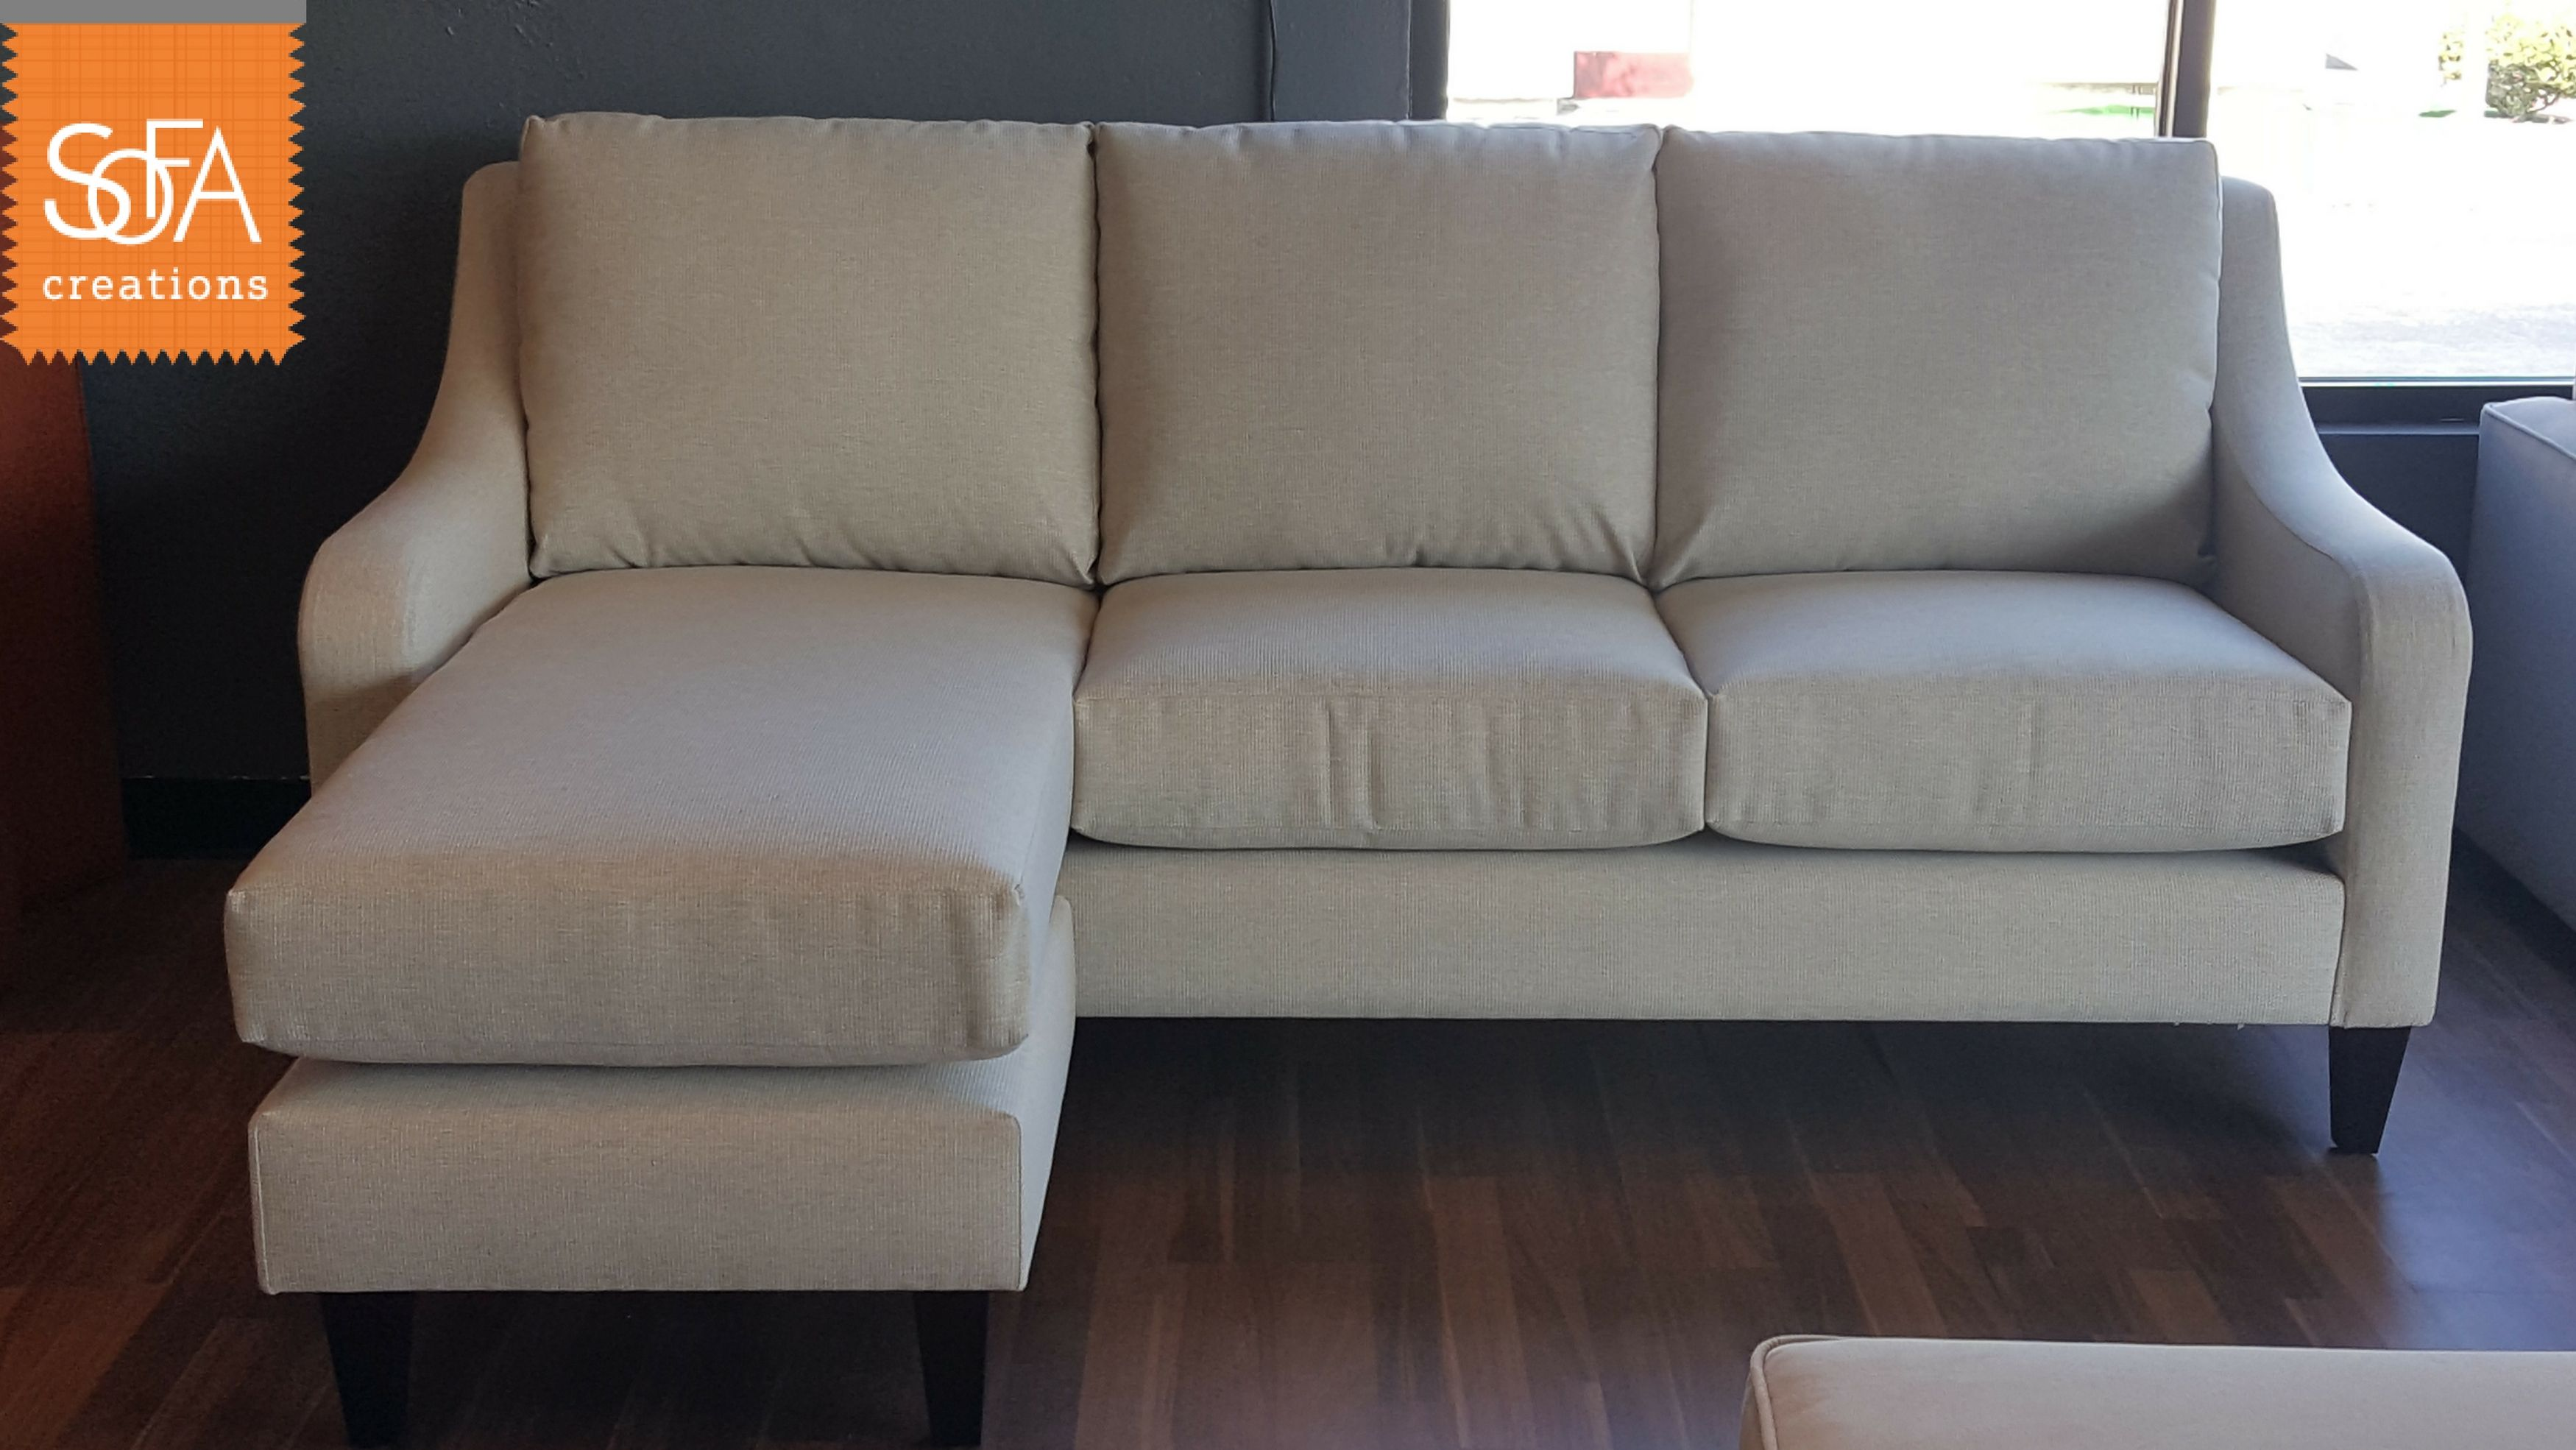 Dayton Sofa With Moveable Chaise In Keen Railroad Sofa Creations Now Offers  Stain Resistant Fabrics! Now You Can Customize Your Sofa And Sectional In  An ...